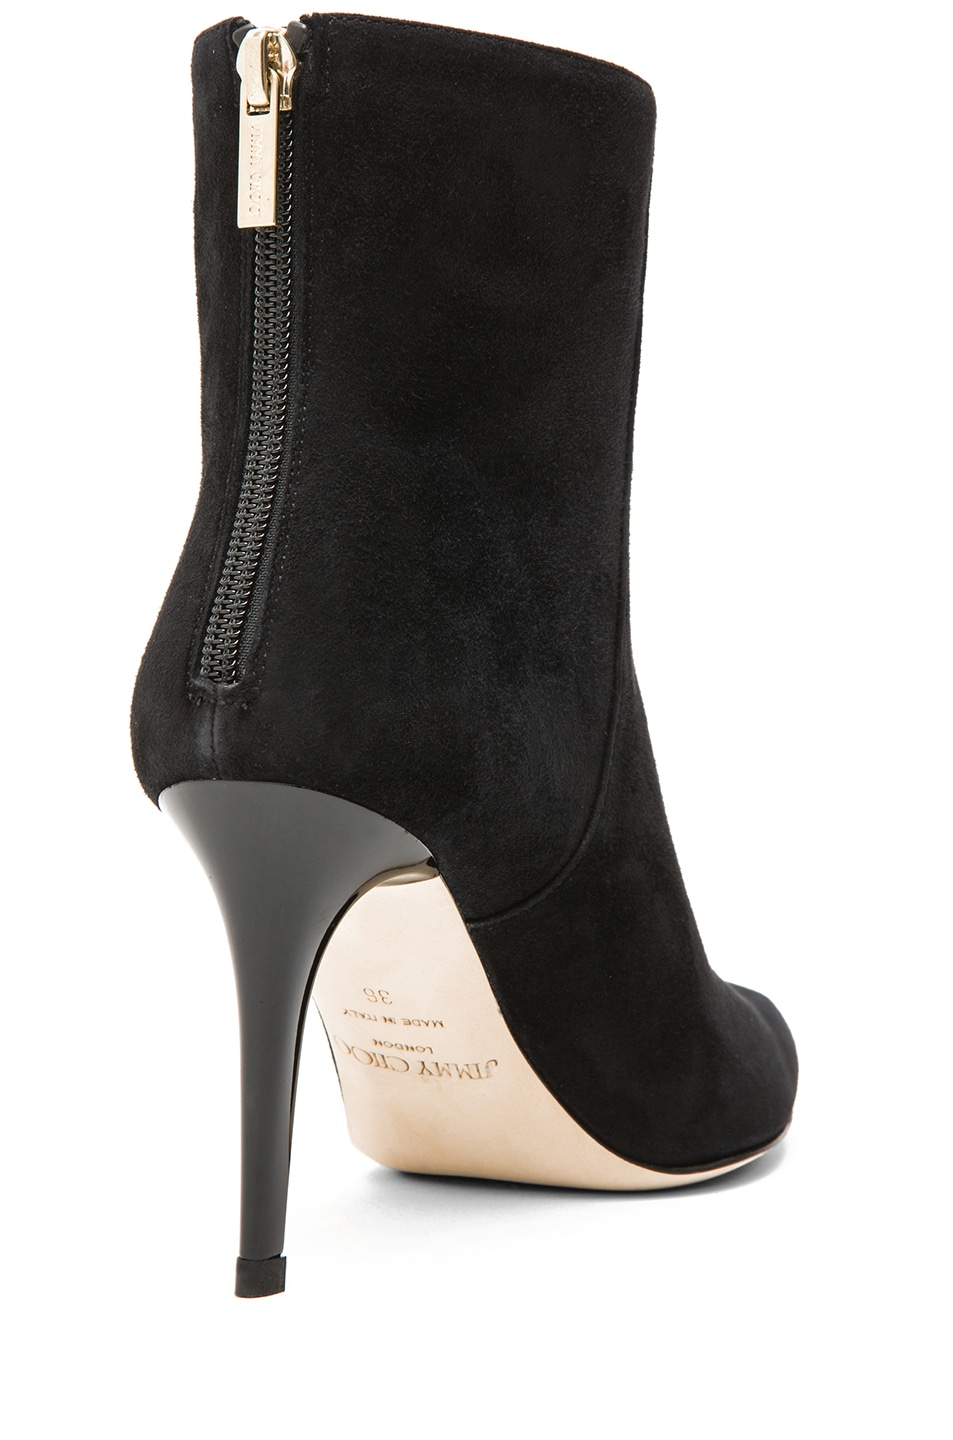 Image 3 of Jimmy Choo Brock Suede 85mm Ankle Boot in Black Suede